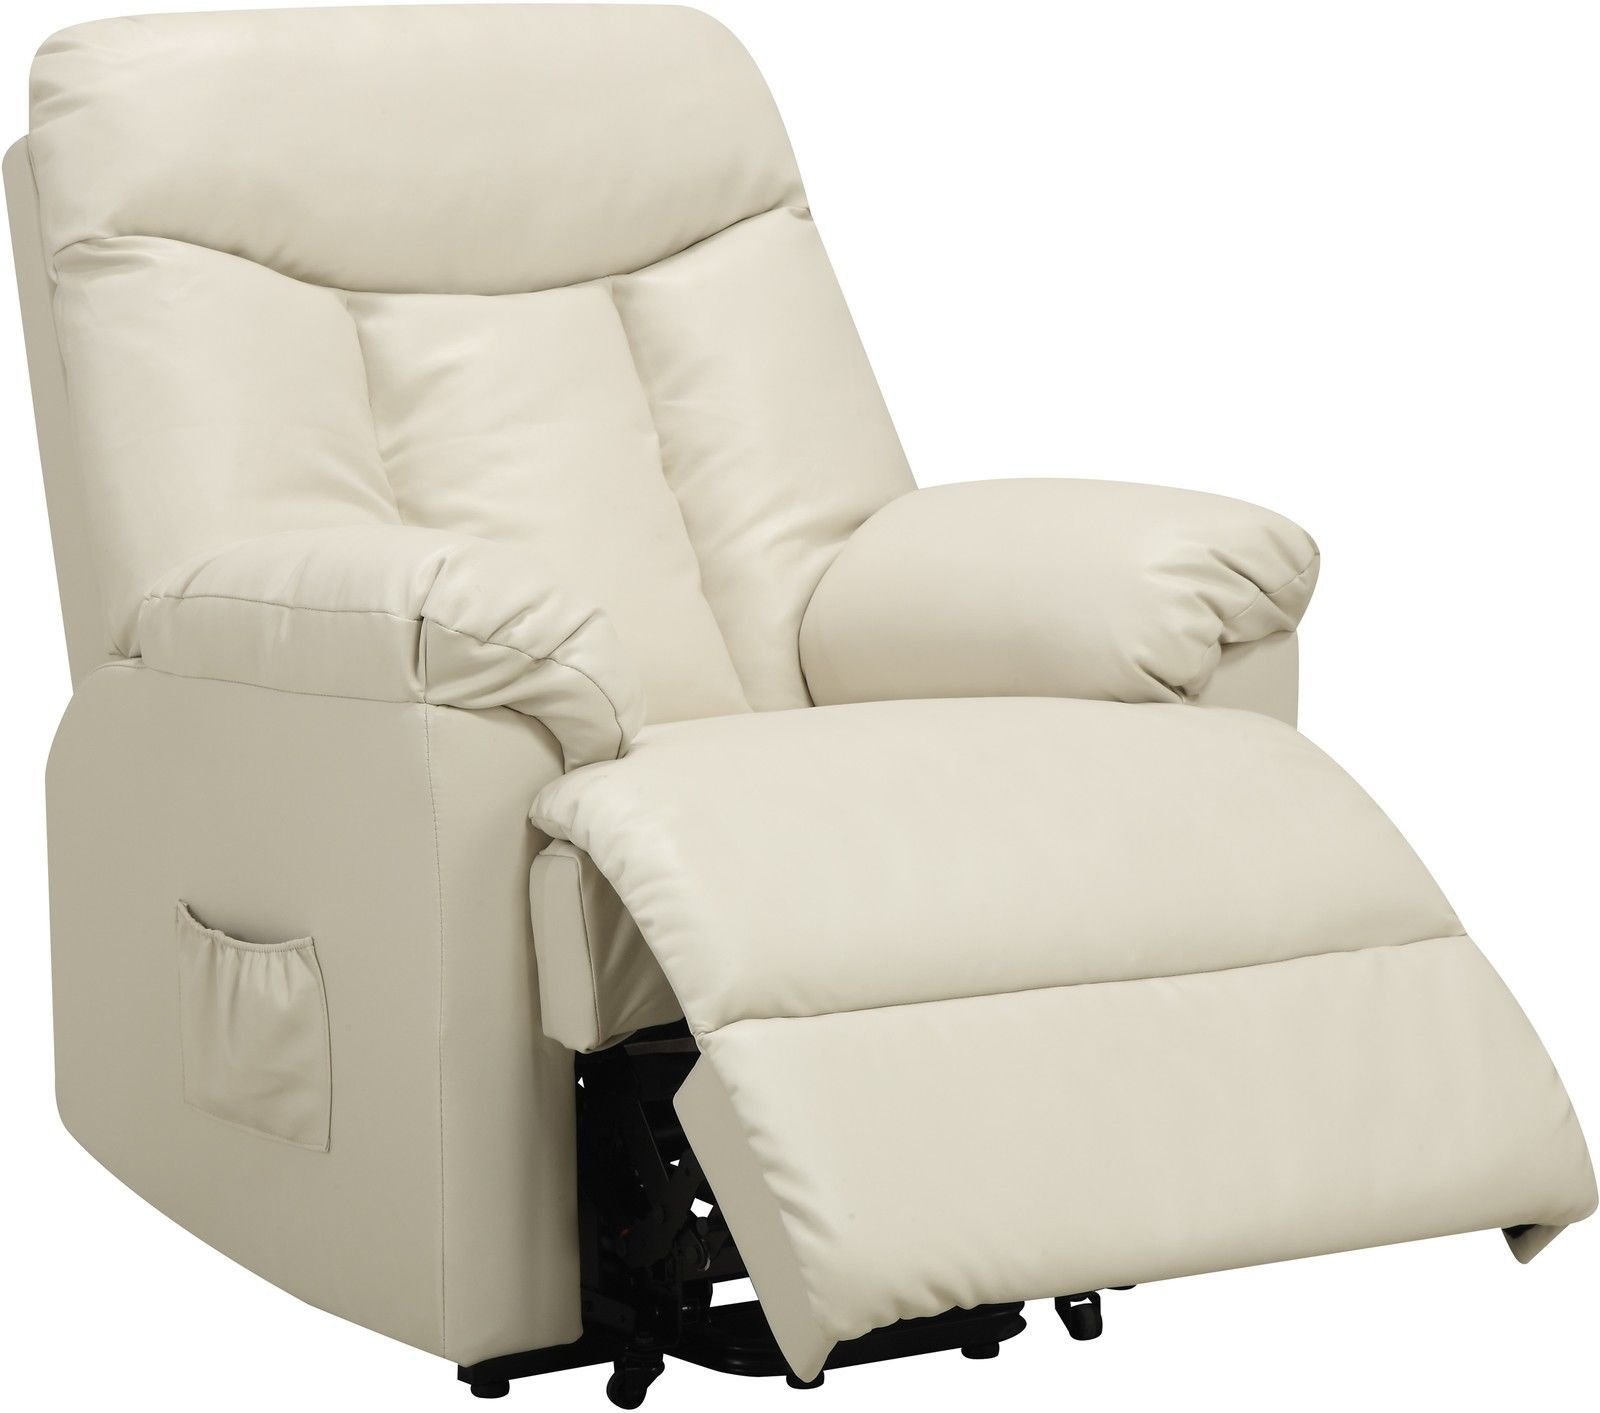 seat lift chair mainstays xl zero gravity with side table and canopy tan electric recliner cream leather power motion